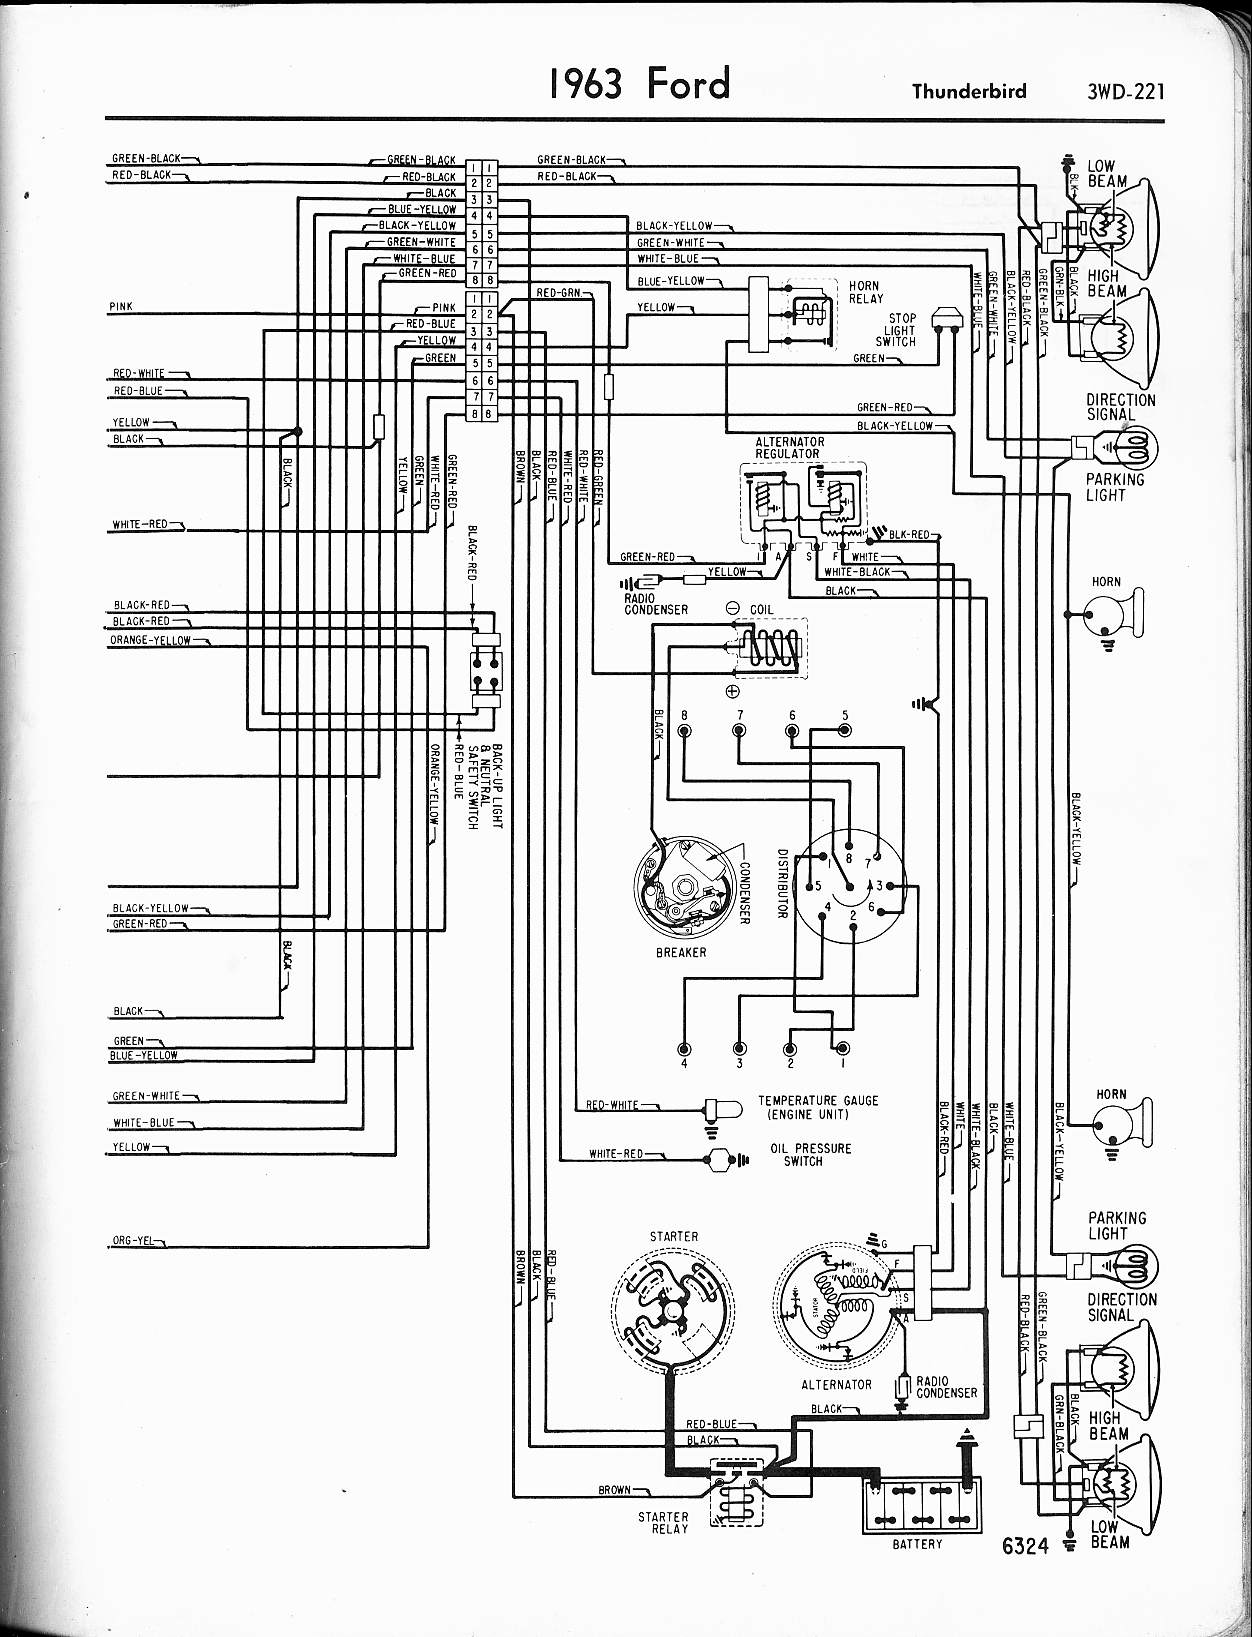 1962 thunderbird fuse diagram example electrical wiring diagram u2022 rh cranejapan co 1961 thunderbird wiring diagram 1997 Ford Thunderbird Wiring Diagram